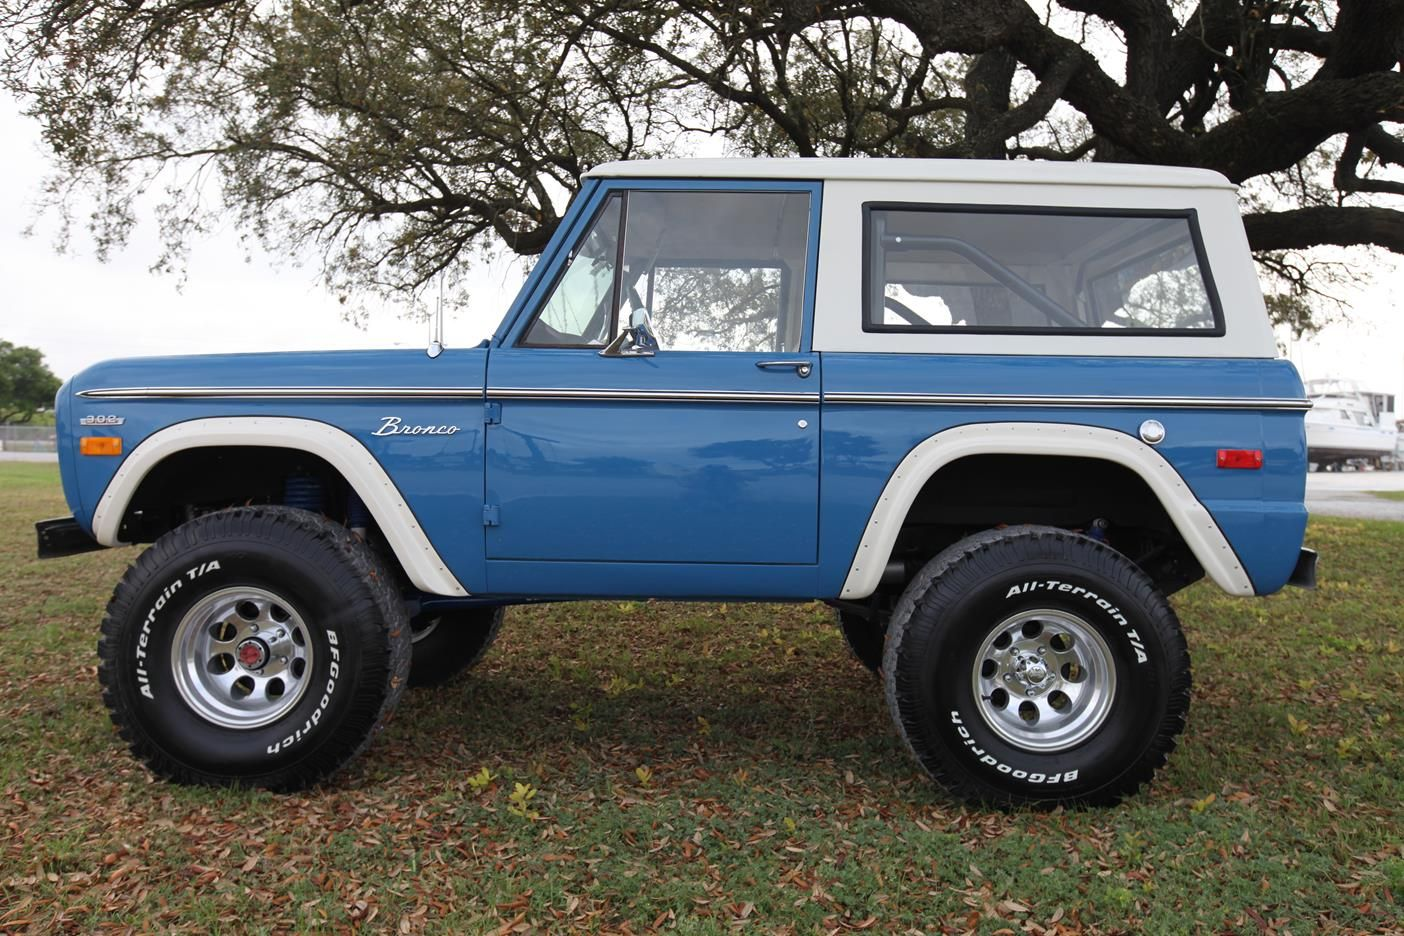 Early Classic Ford Bronco…351 Windsor – Bahama Blue – Built by Velocity Restor…